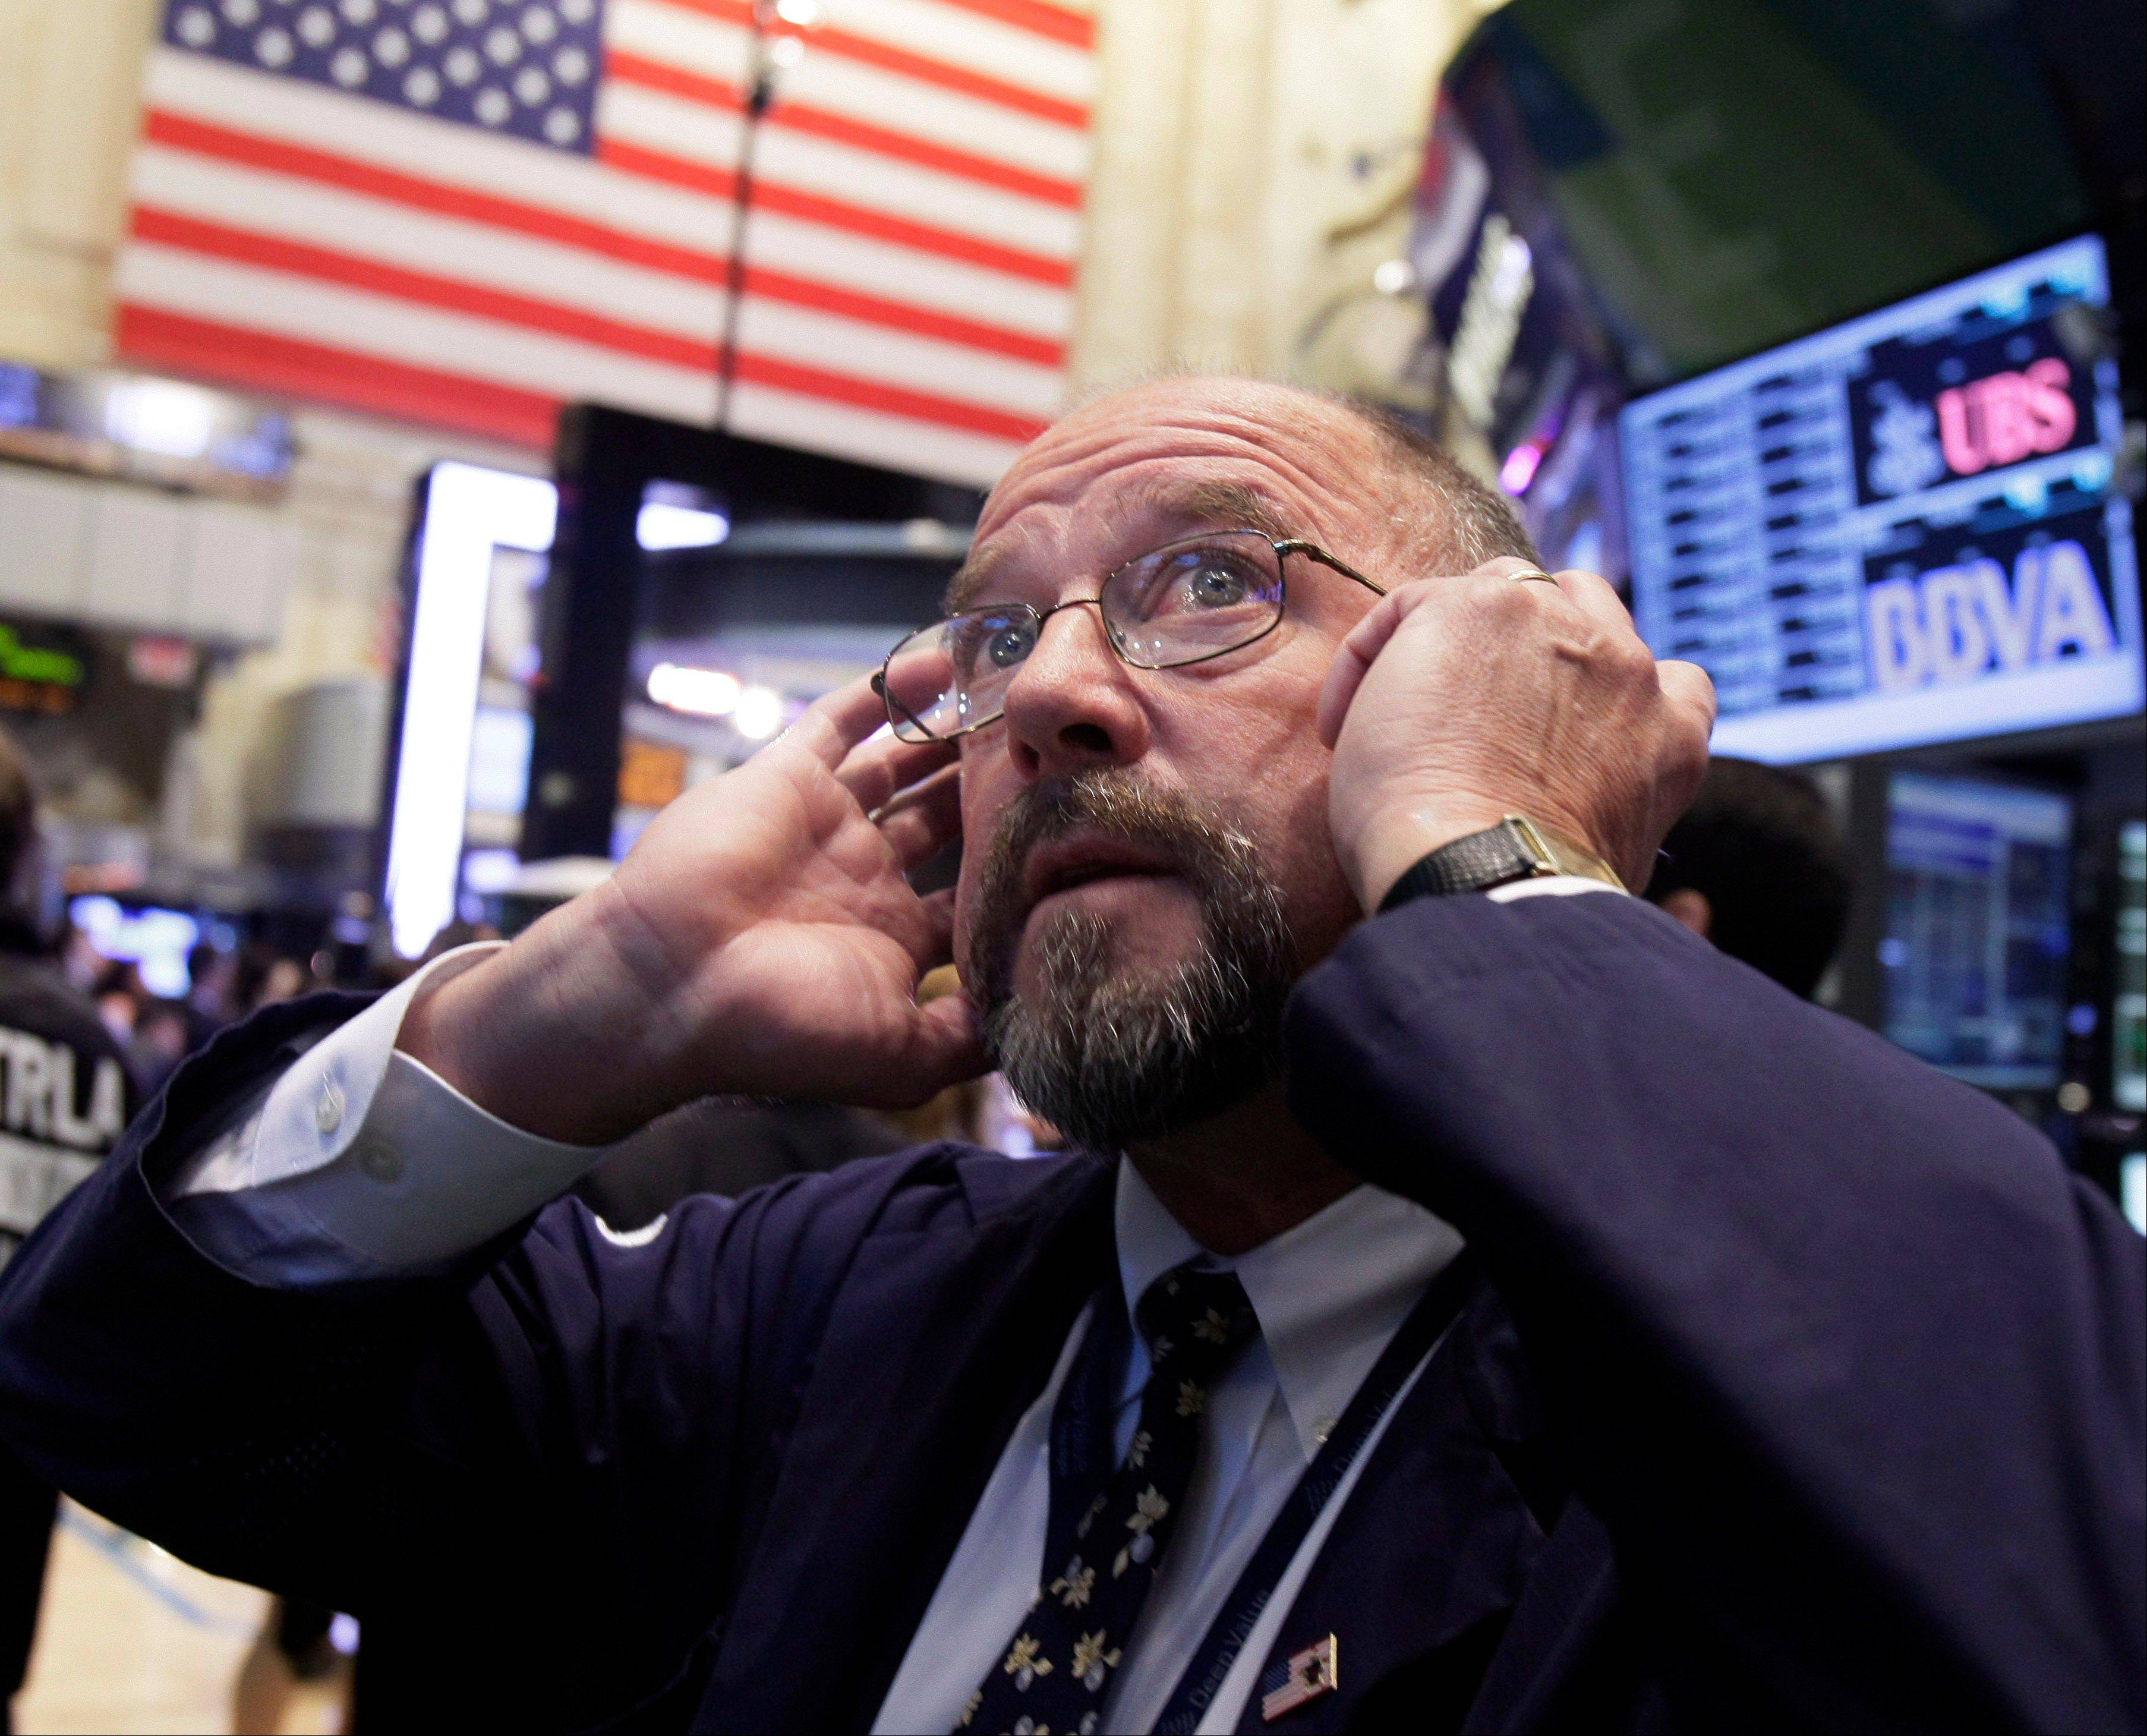 U.S. stocks declined, erasing earlier gains after benchmark indexes approached five-year highs, amid concern that global stimulus measures won't be enough to boost growth at the world's largest economy.